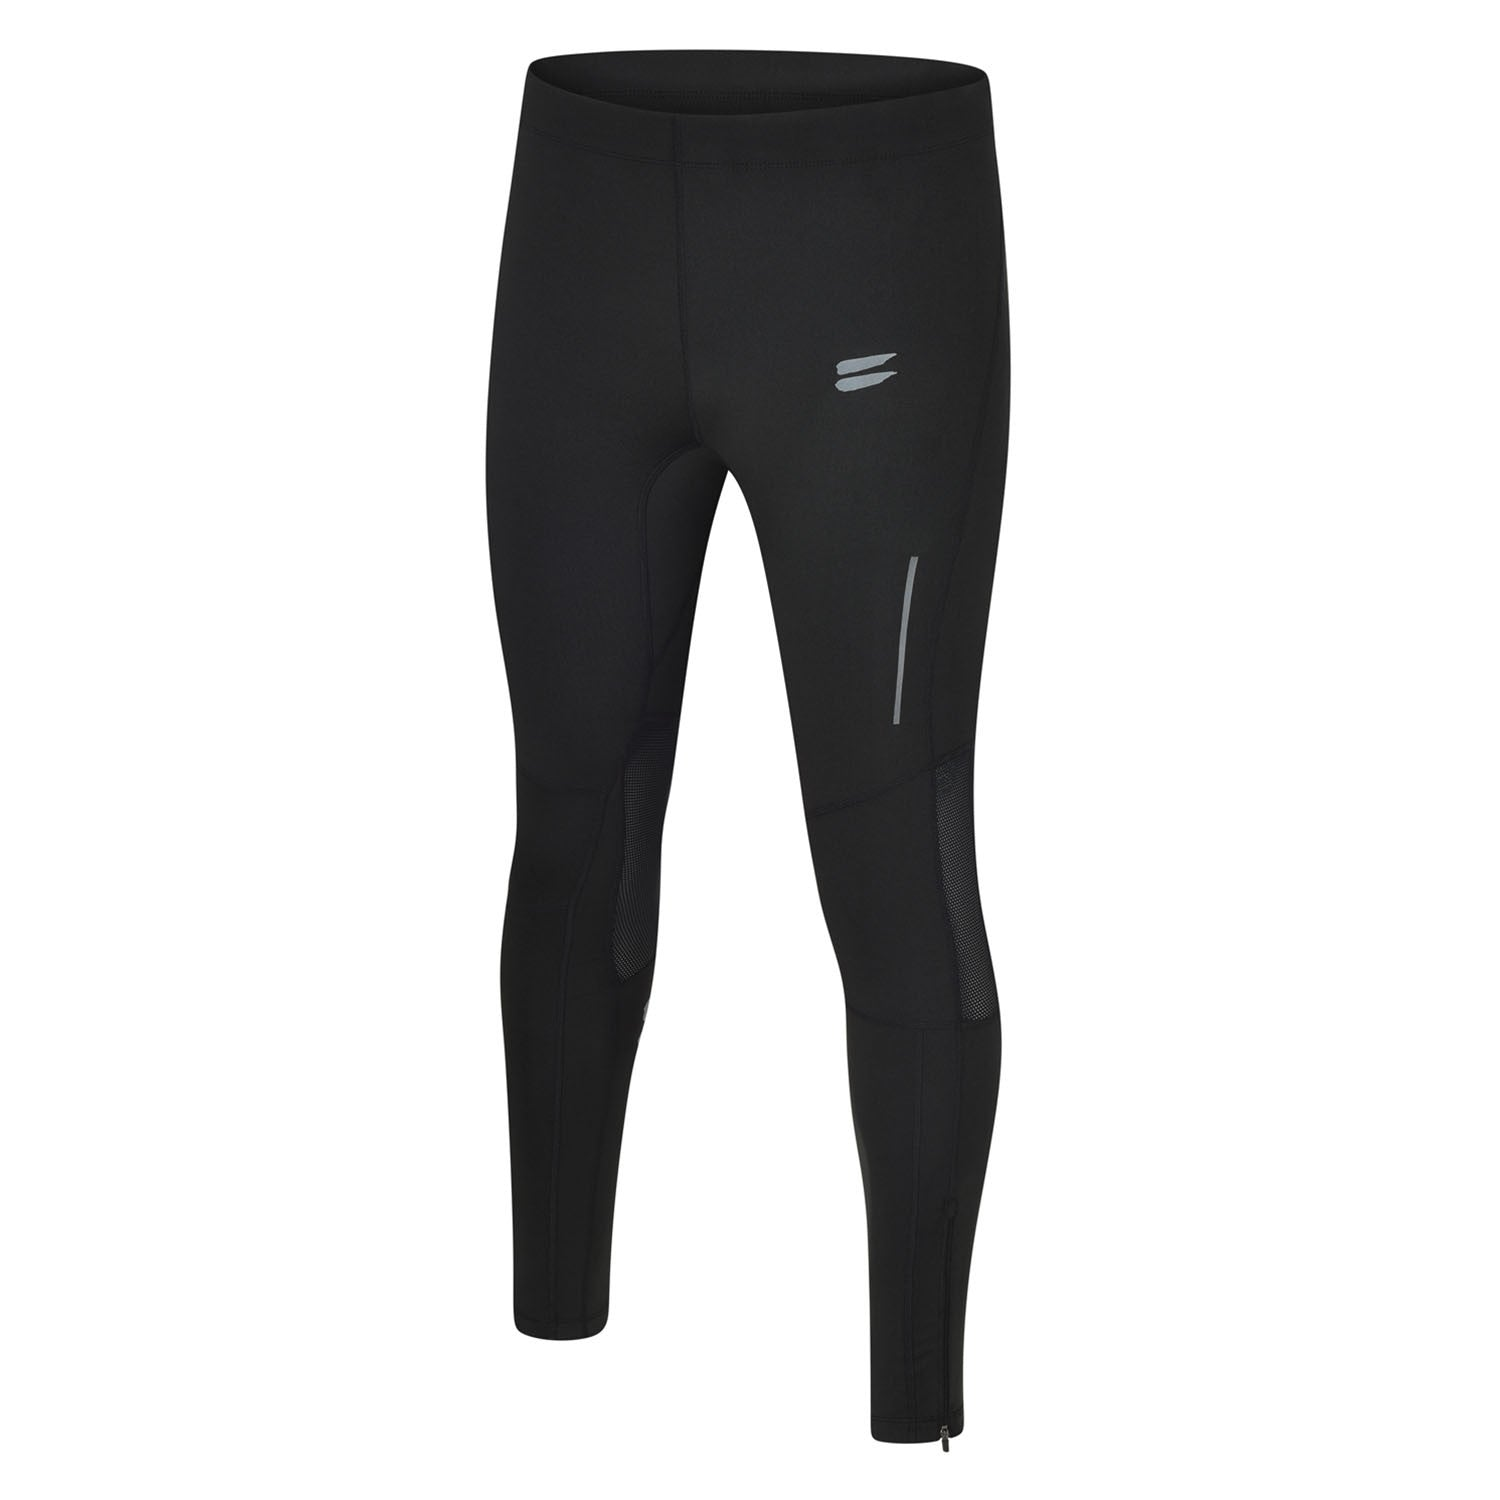 Men's Running Tights - Black / Charcoal , Tribesports - 1